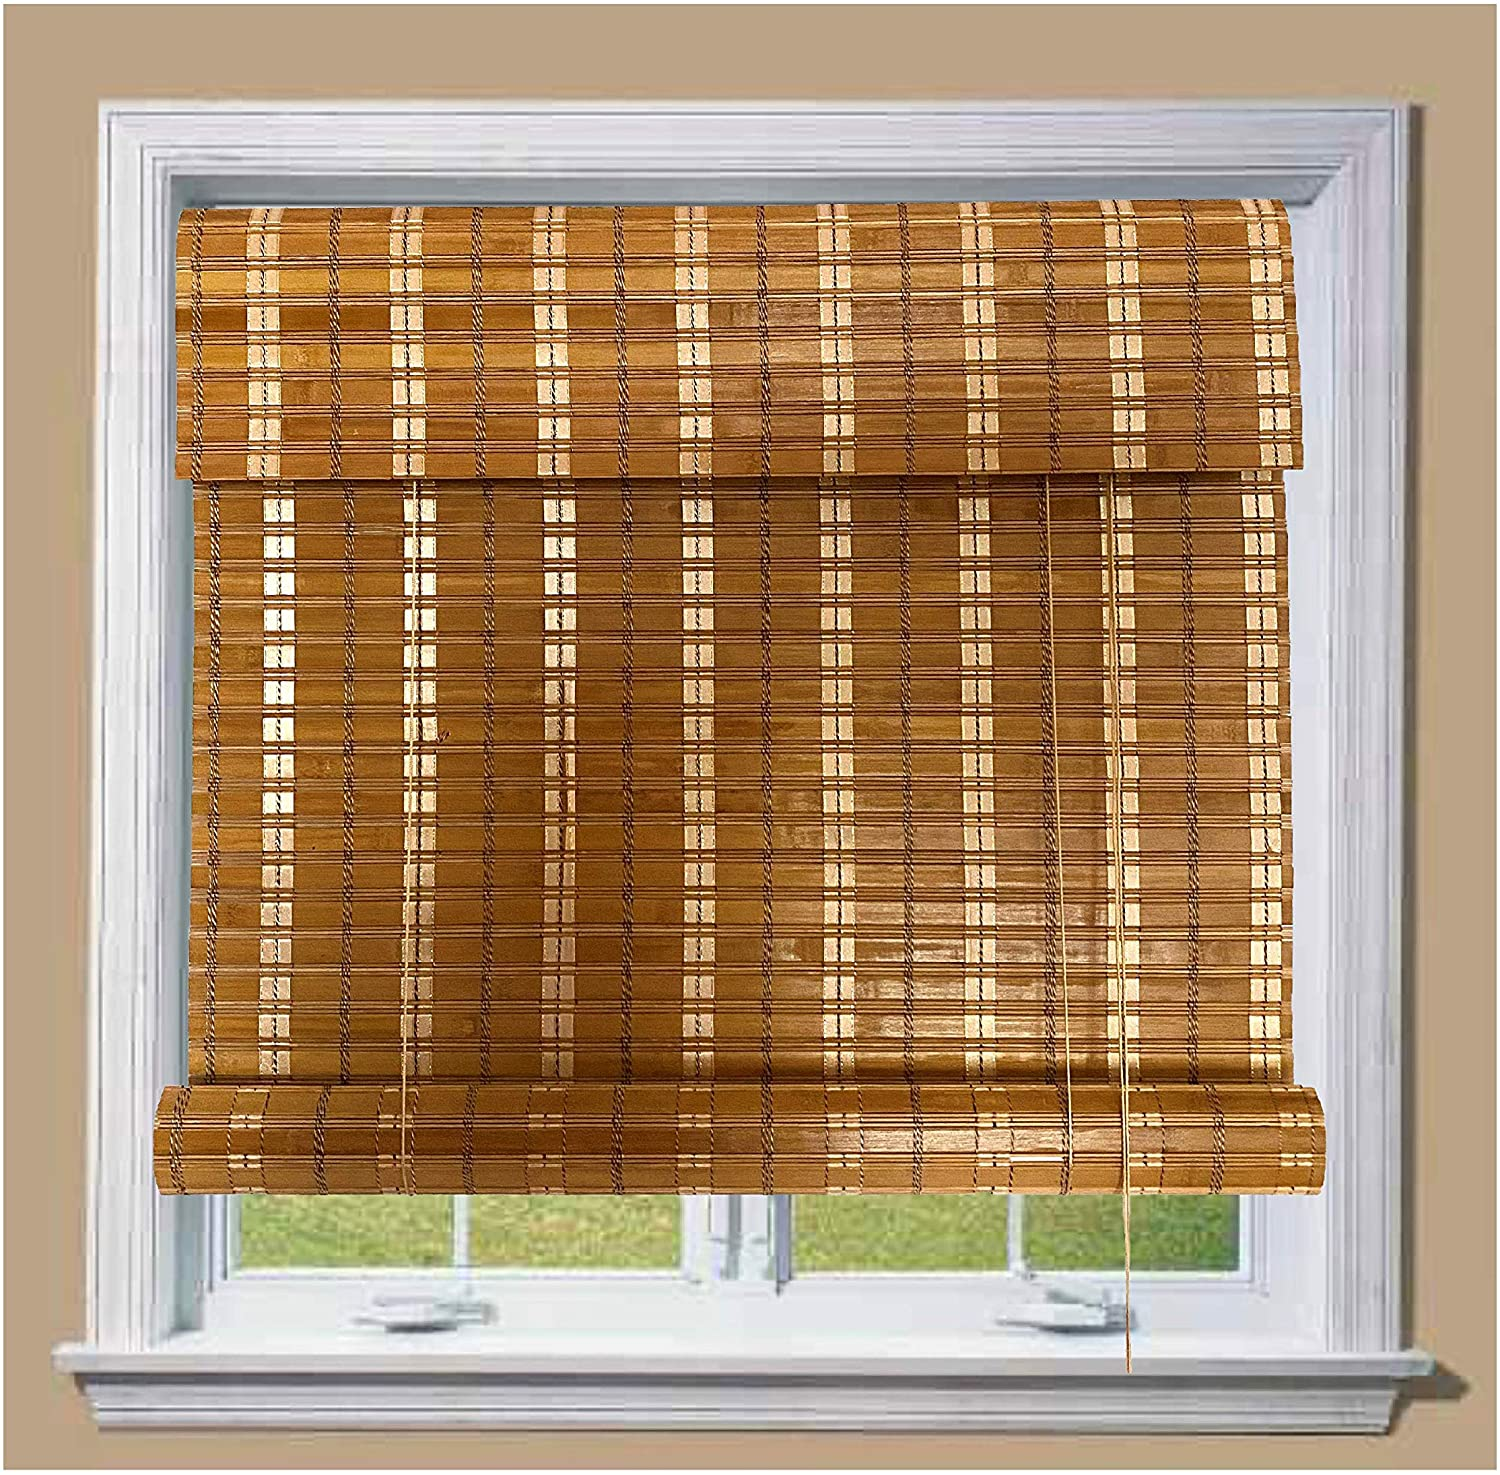 THY COLLECTIBLE Bamboo Roll Up Window Blind Sun Shade, Light Filtering Roller Shades with 8-Inch Valance - Tan Colored Bamboo (28